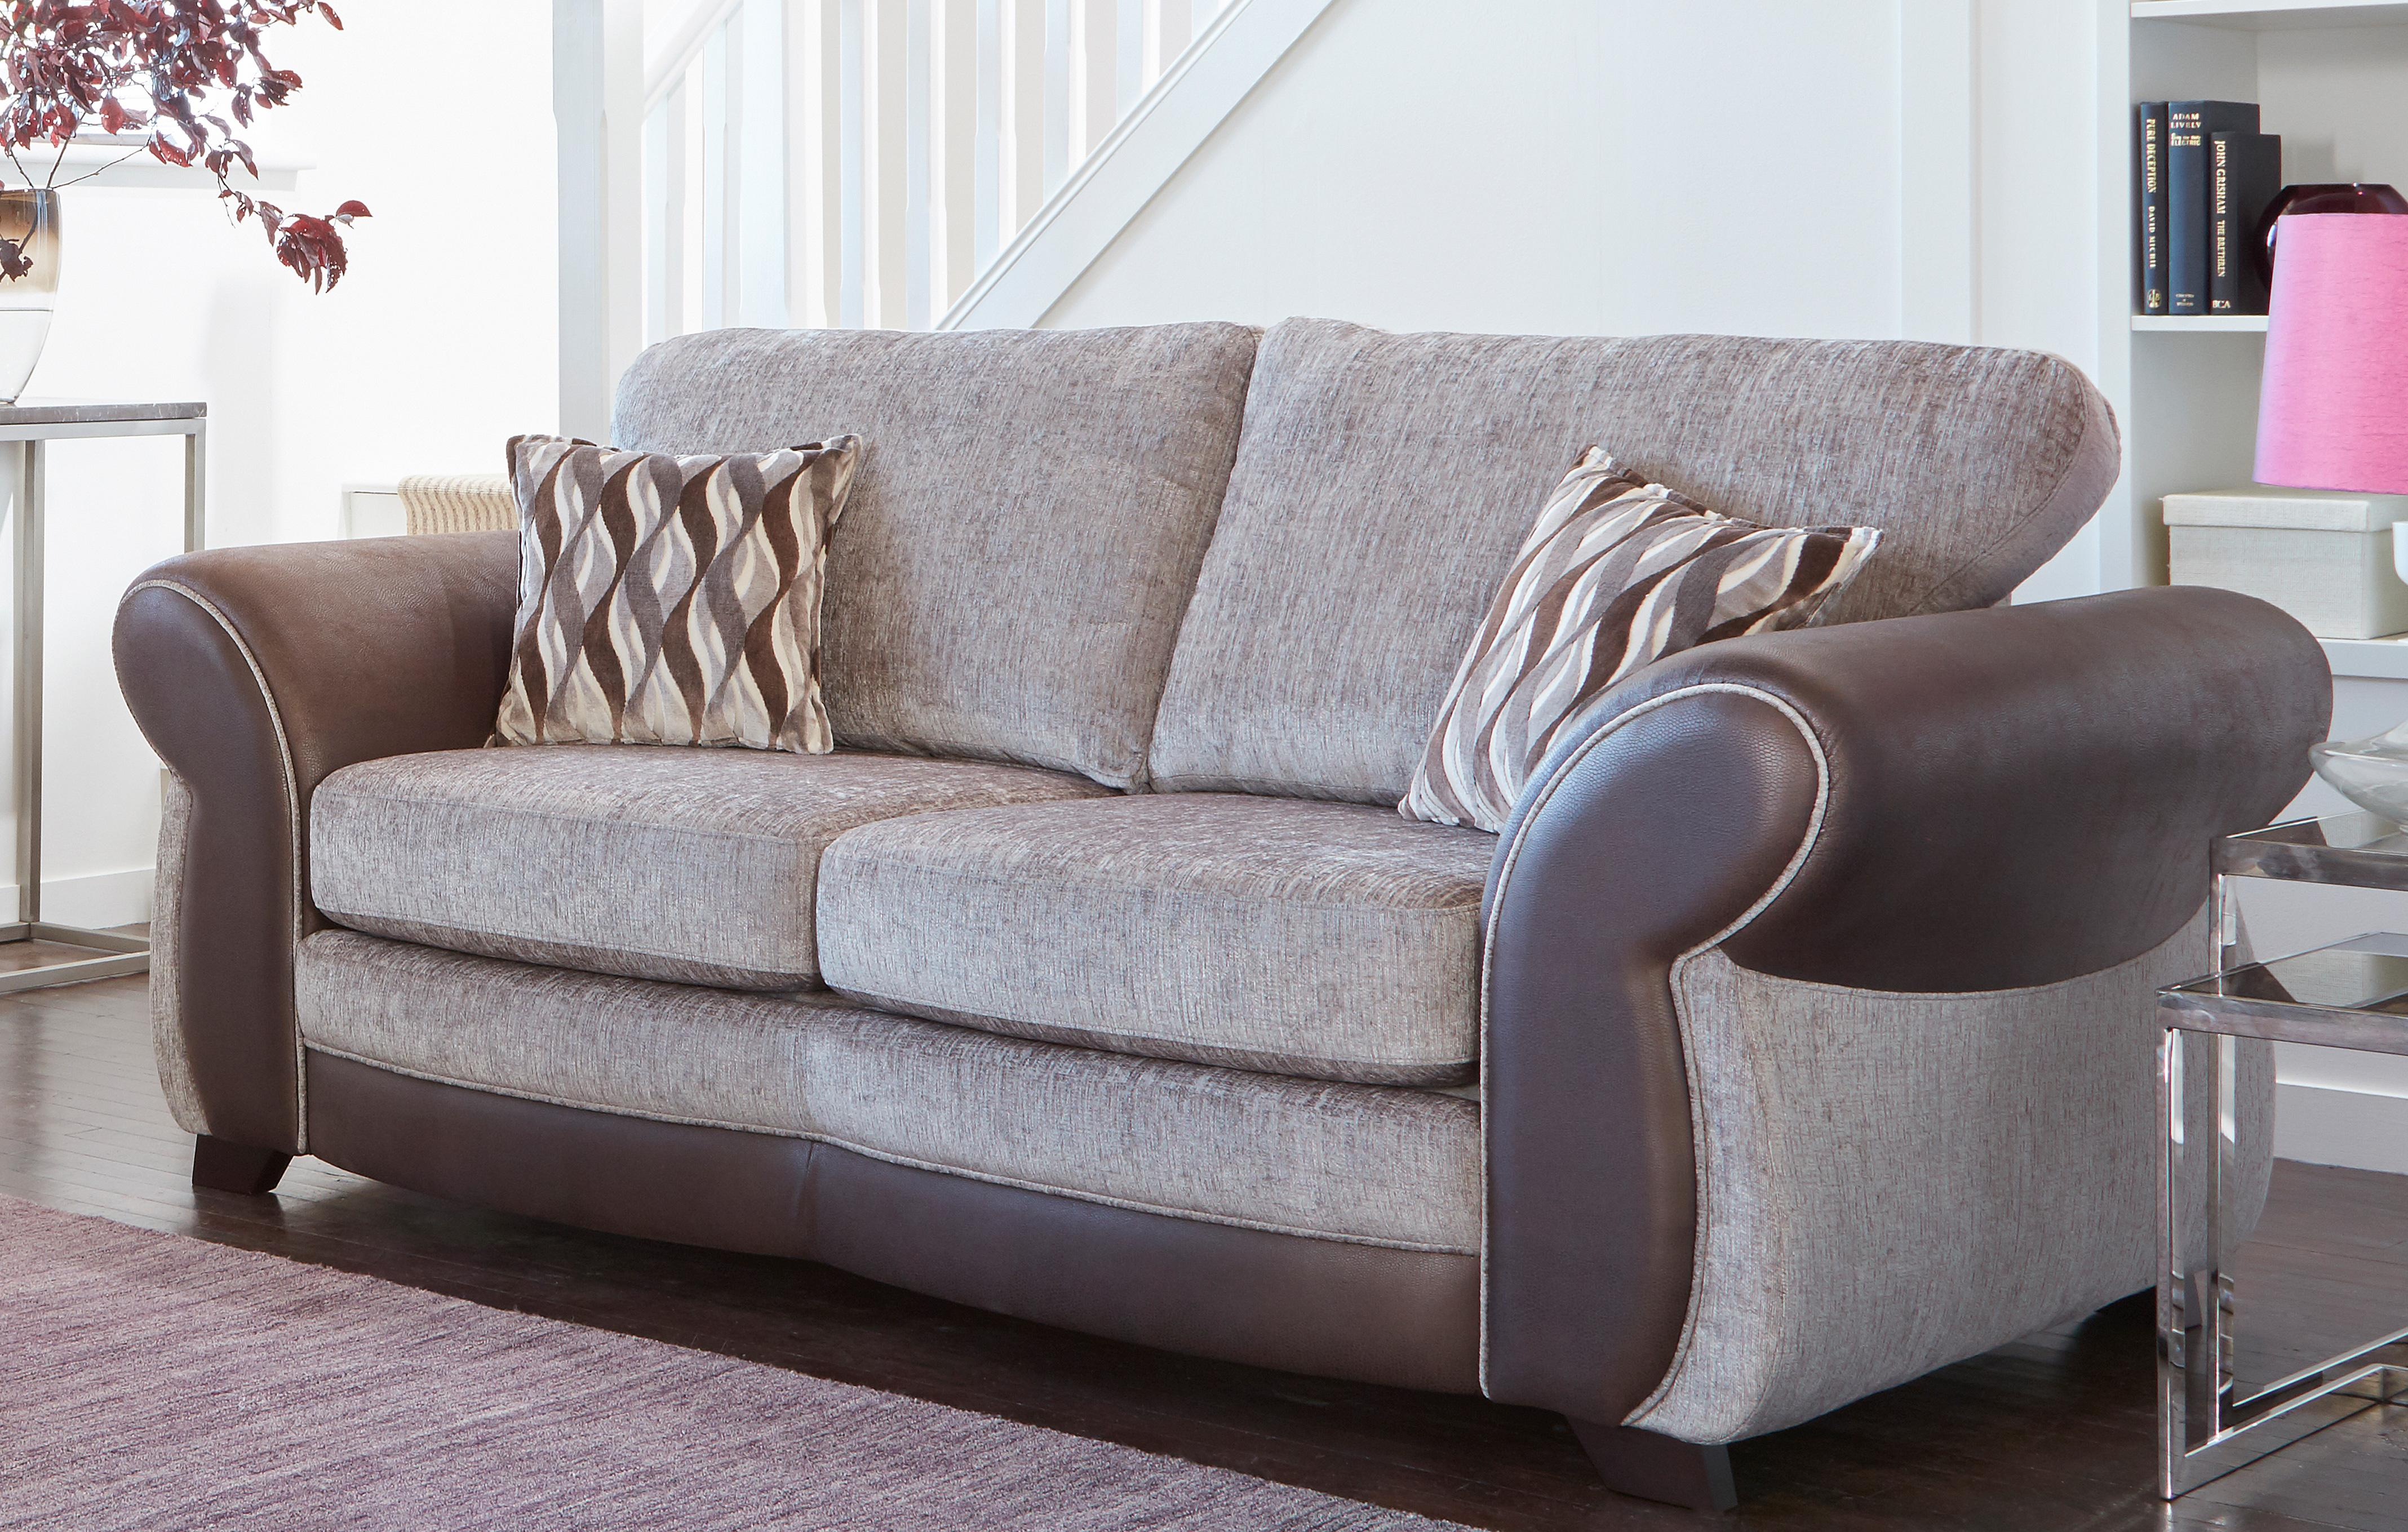 Sofa bed designs pictures